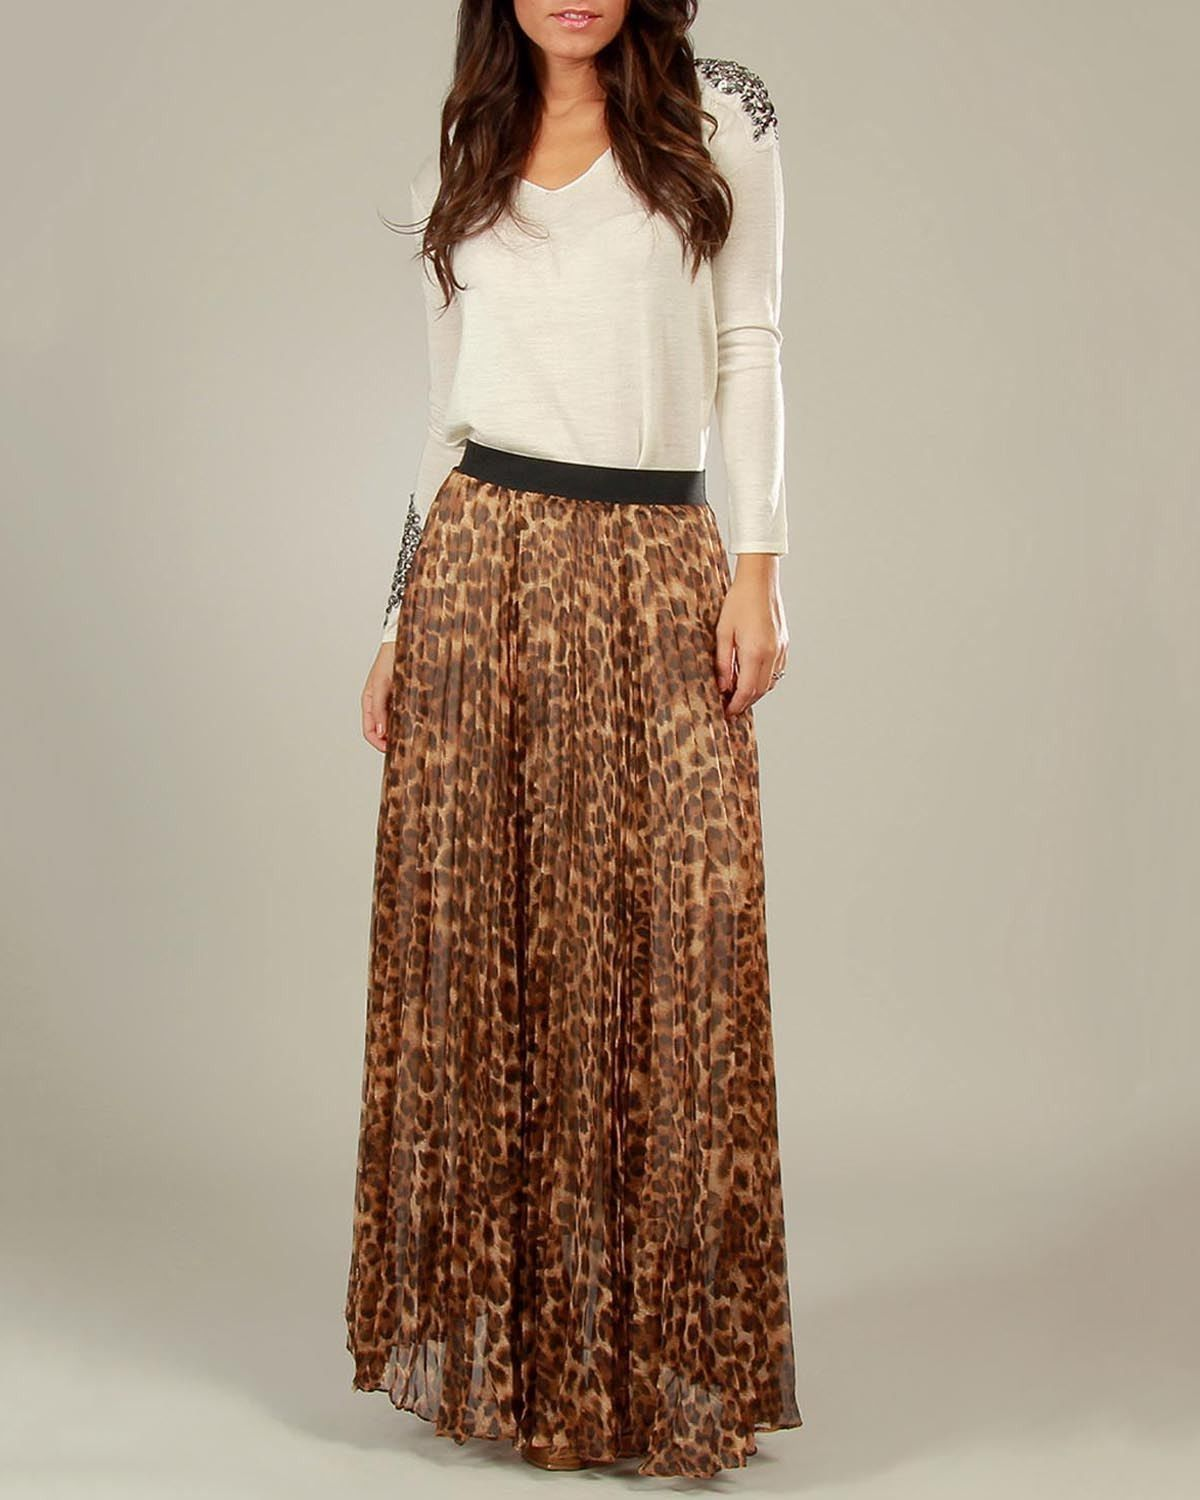 2a2a10568619 Leopard Print Pleated Maxi Skirt | my dream closet. | Skirts ...